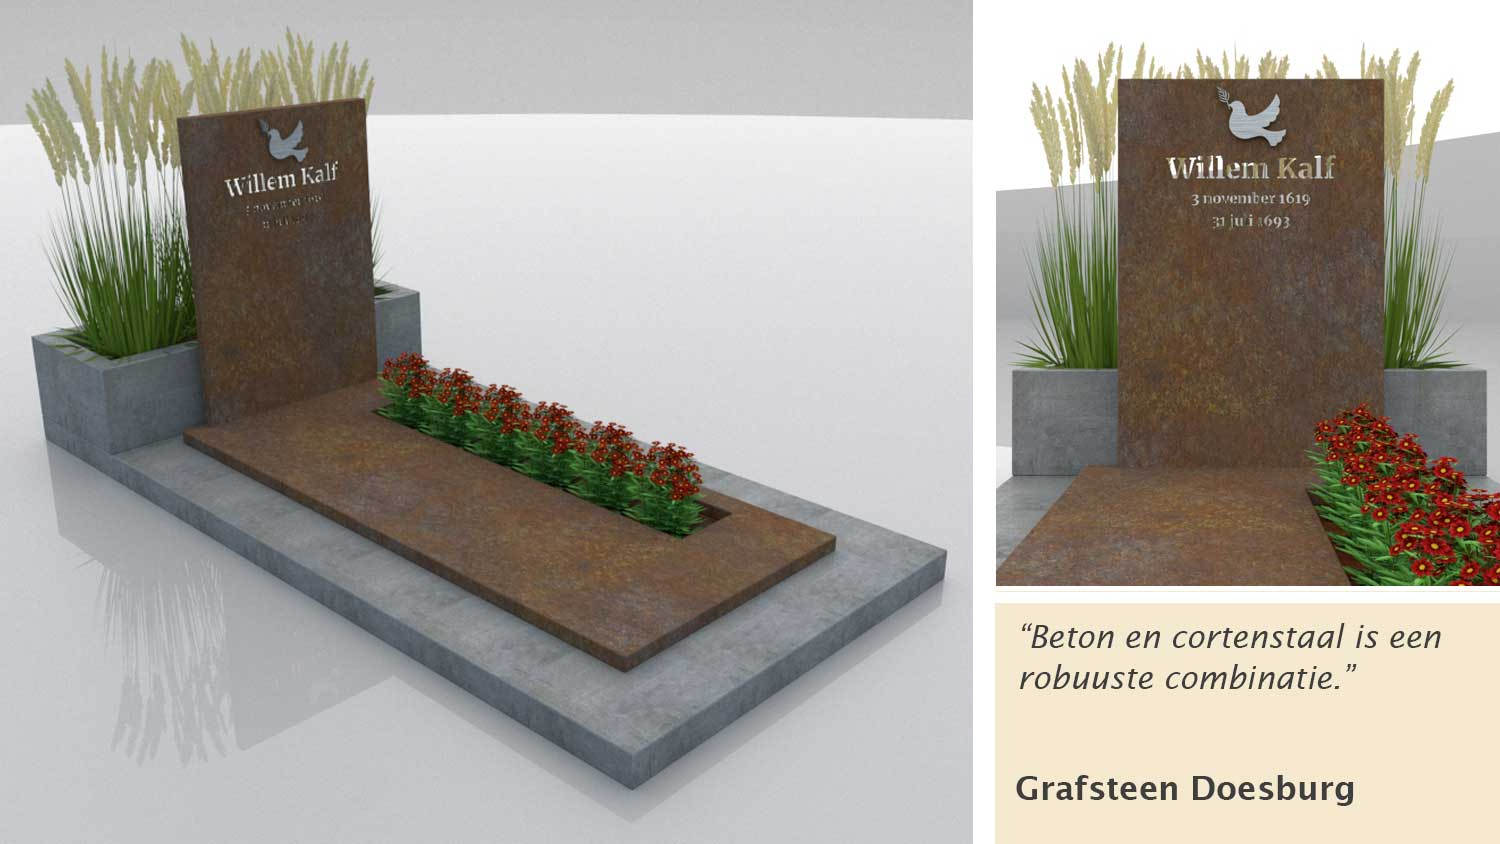 Grafmonument Doesburg